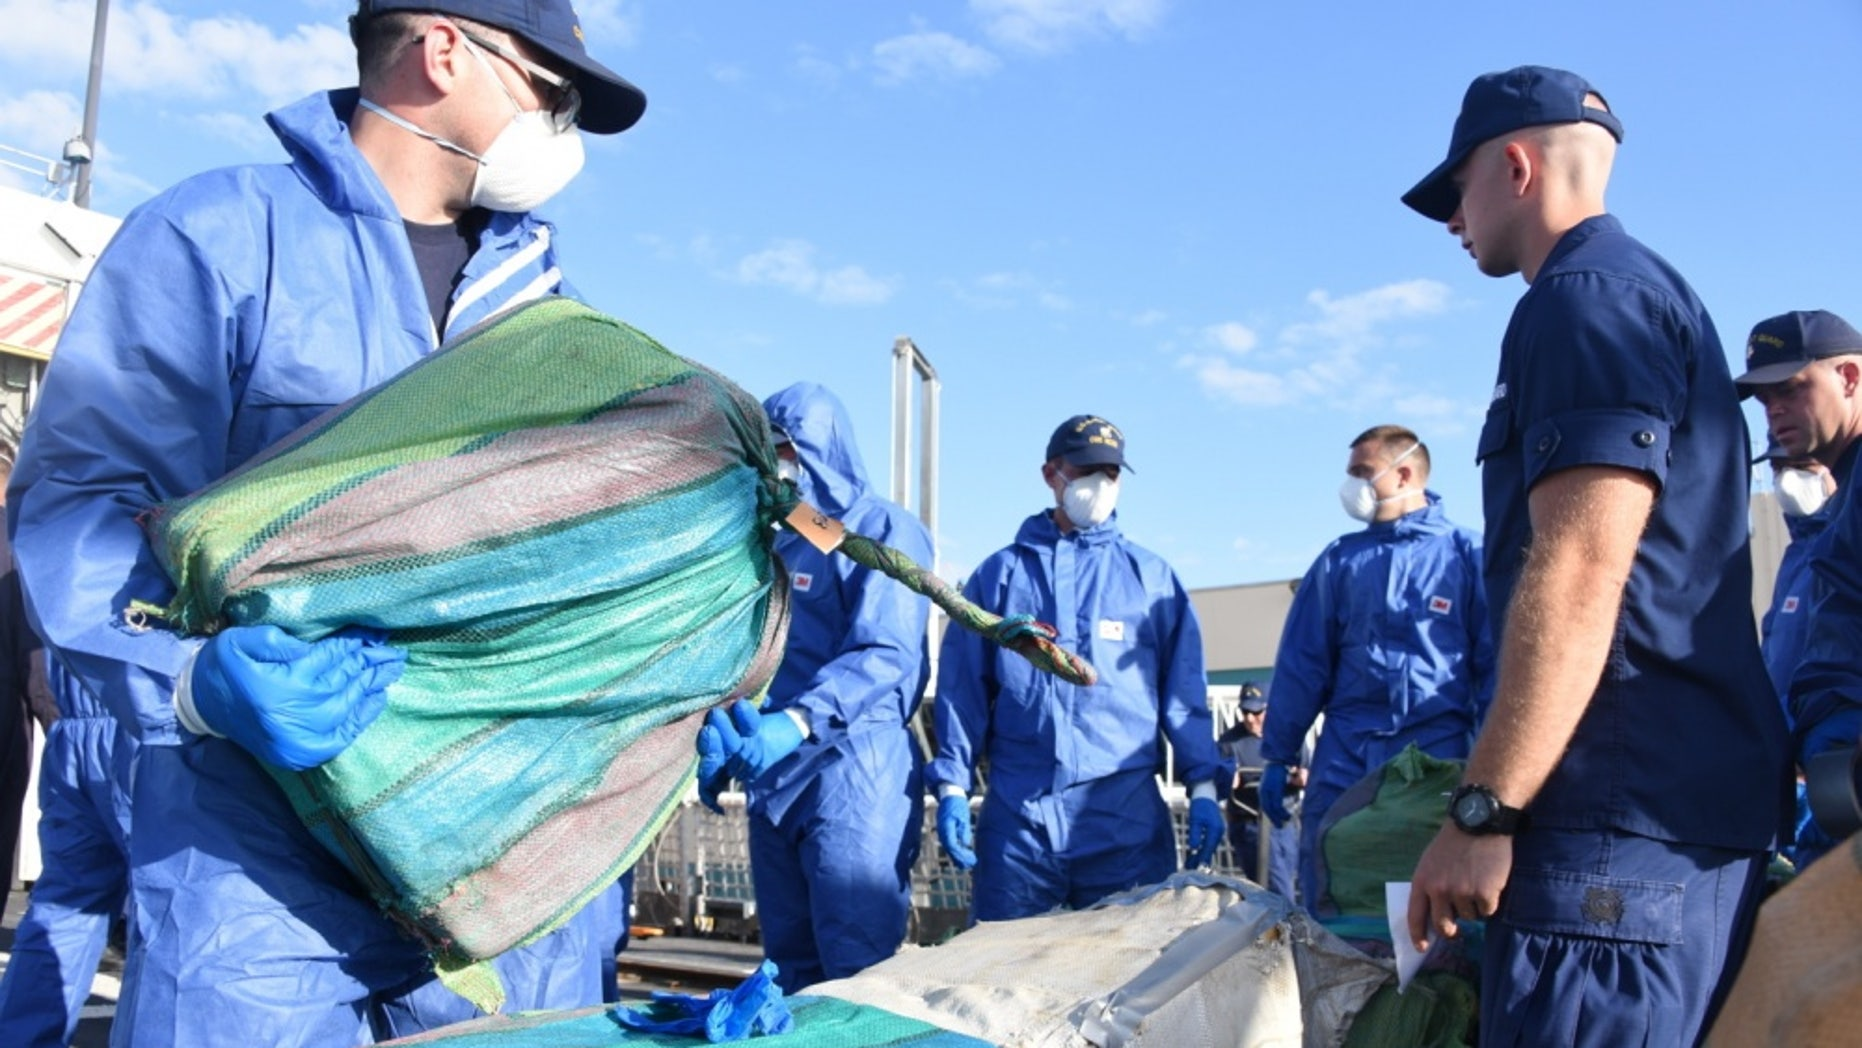 Crewmembers of the Coast Guard Cutter Bear handle drugs intercepted off the coasts of Mexico, Central and South America. Photo by Petty Officer 3rd Class Brandon Murray.